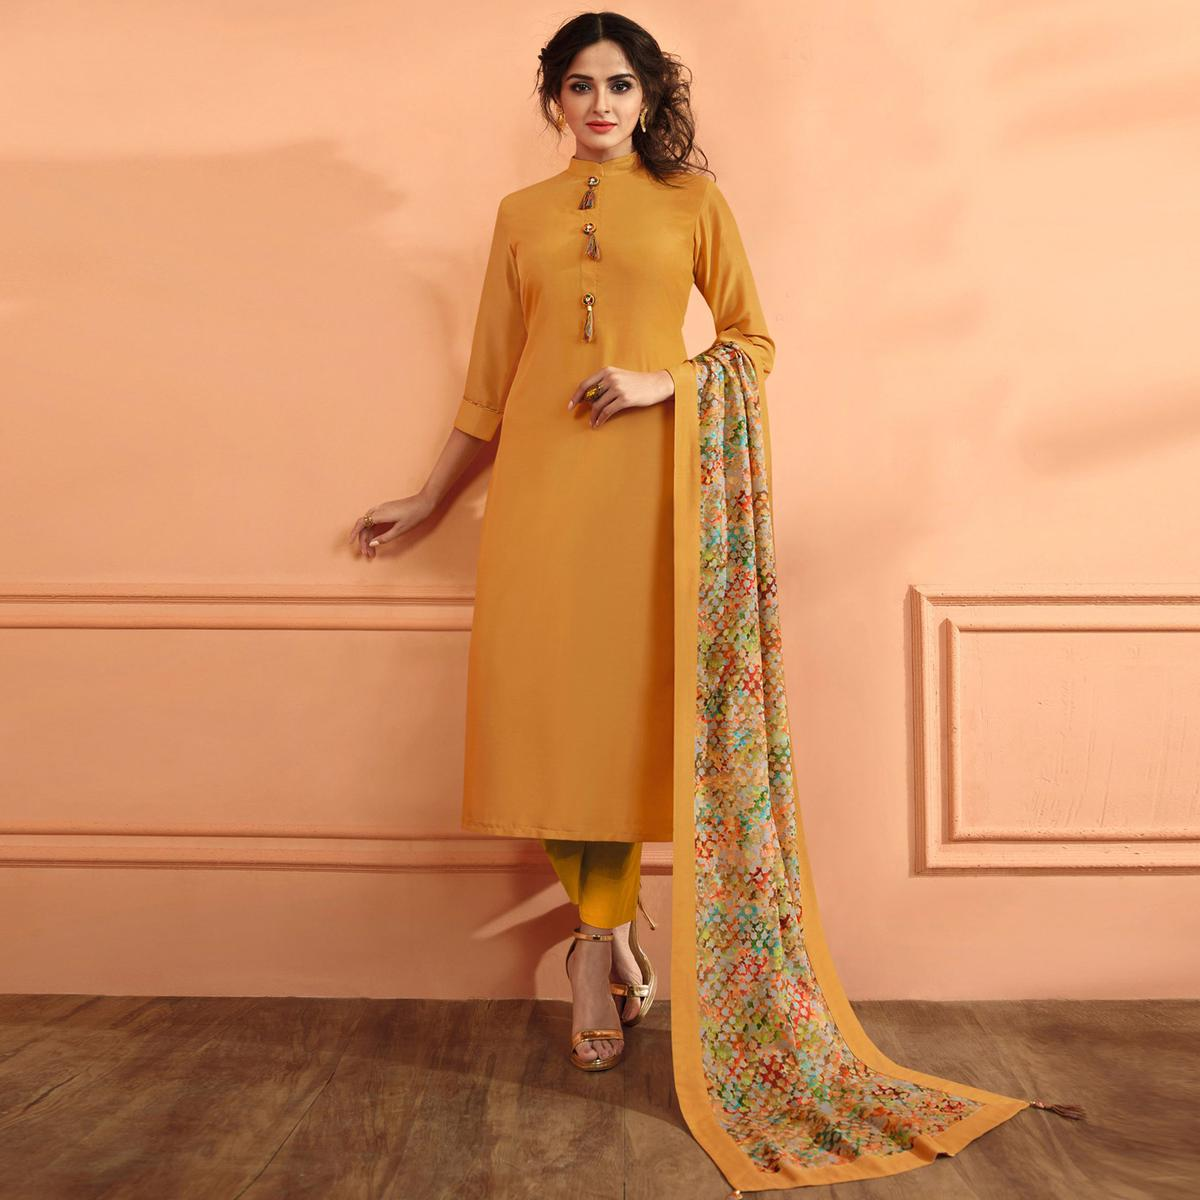 Blooming Mustard Yellow Colored Partywear Embroidered Muslin Cotton Suit